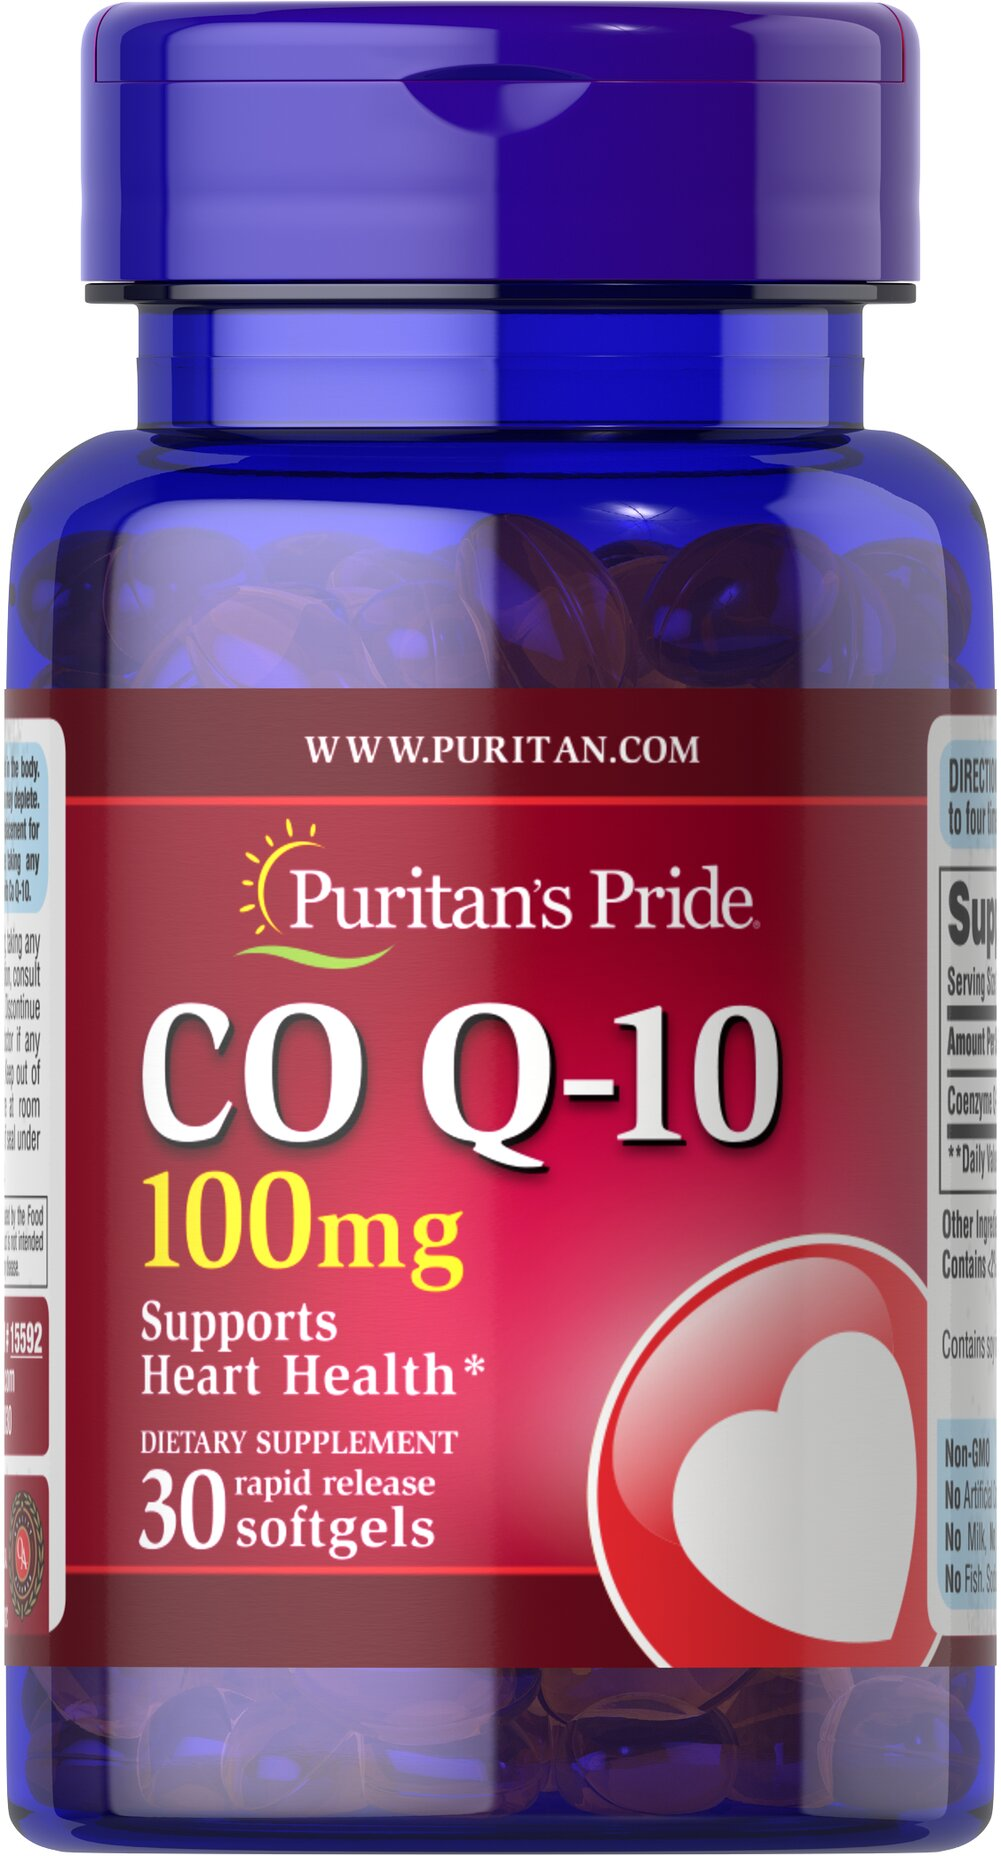 Q-SORB™ Co Q-10 100 mg <p></p>Made with a natural, highly bioavailable form of Co Q 10 — Q-Sorb.™ Important for Statin drug users++ — taking Q-Sorb™ Co Q 10 can help replenish what Statin drugs can deplete. Coenzyme Q-10 provides powerful antioxidant support.** Good oral health is linked to cardiovascular health; Coenzyme Q10 supports both!** Hermetically sealed in easy to swallow rapid-release softgels for superior absorption. <br /><br />++Note: Statin medications can r